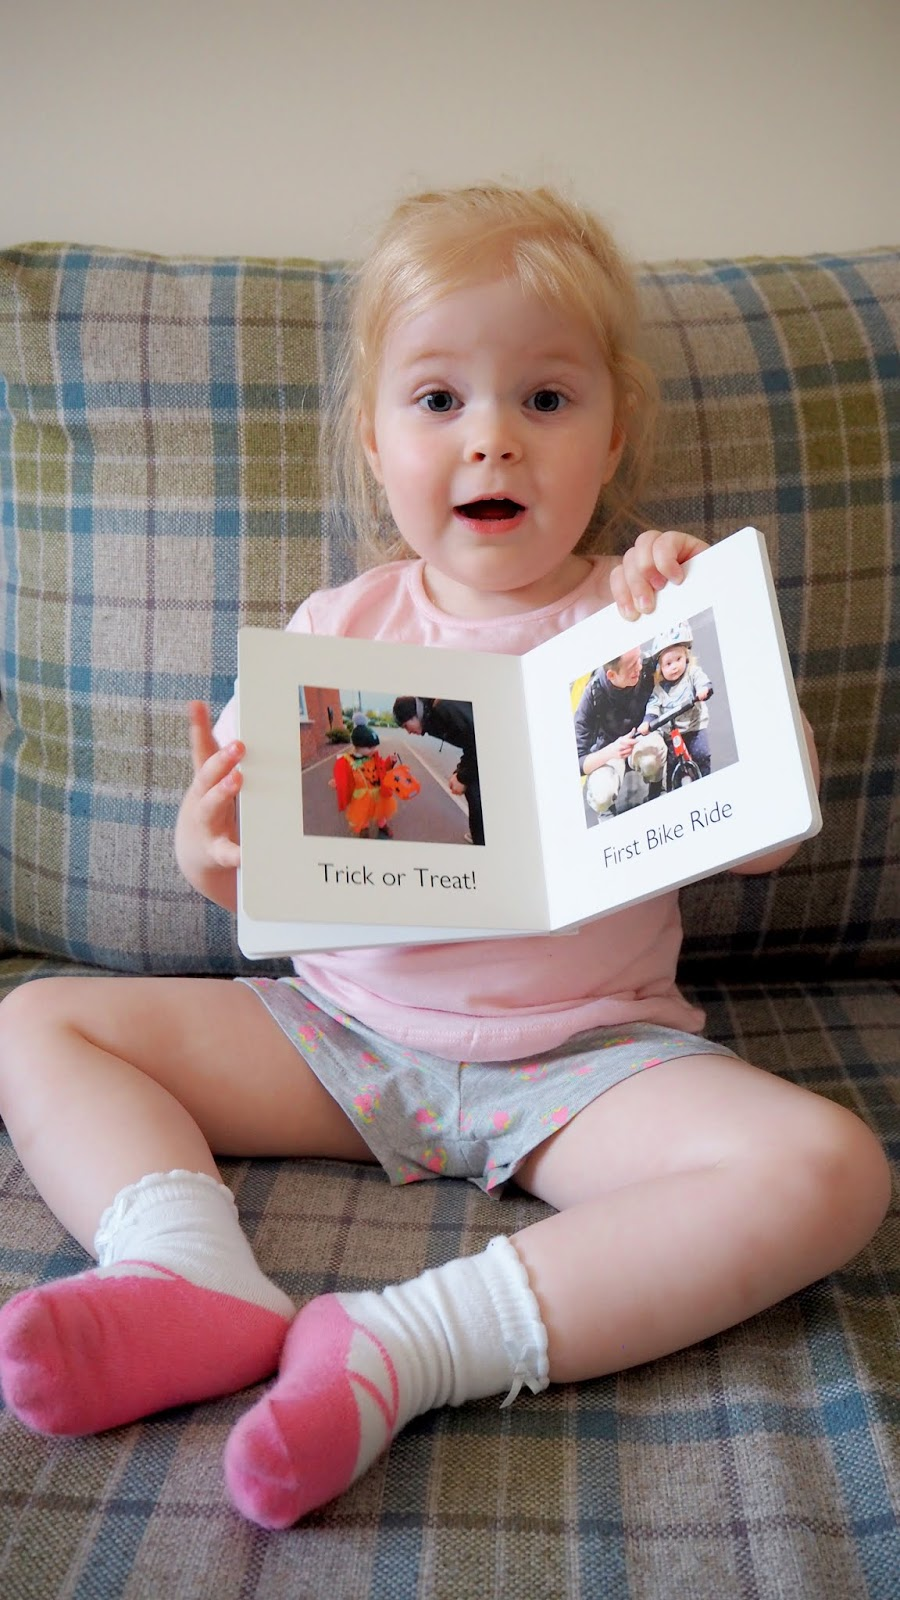 Elise holding the photo book up with an excited/shocked expression on her face. You can see a photo of her trick or treating and on a balance bike.